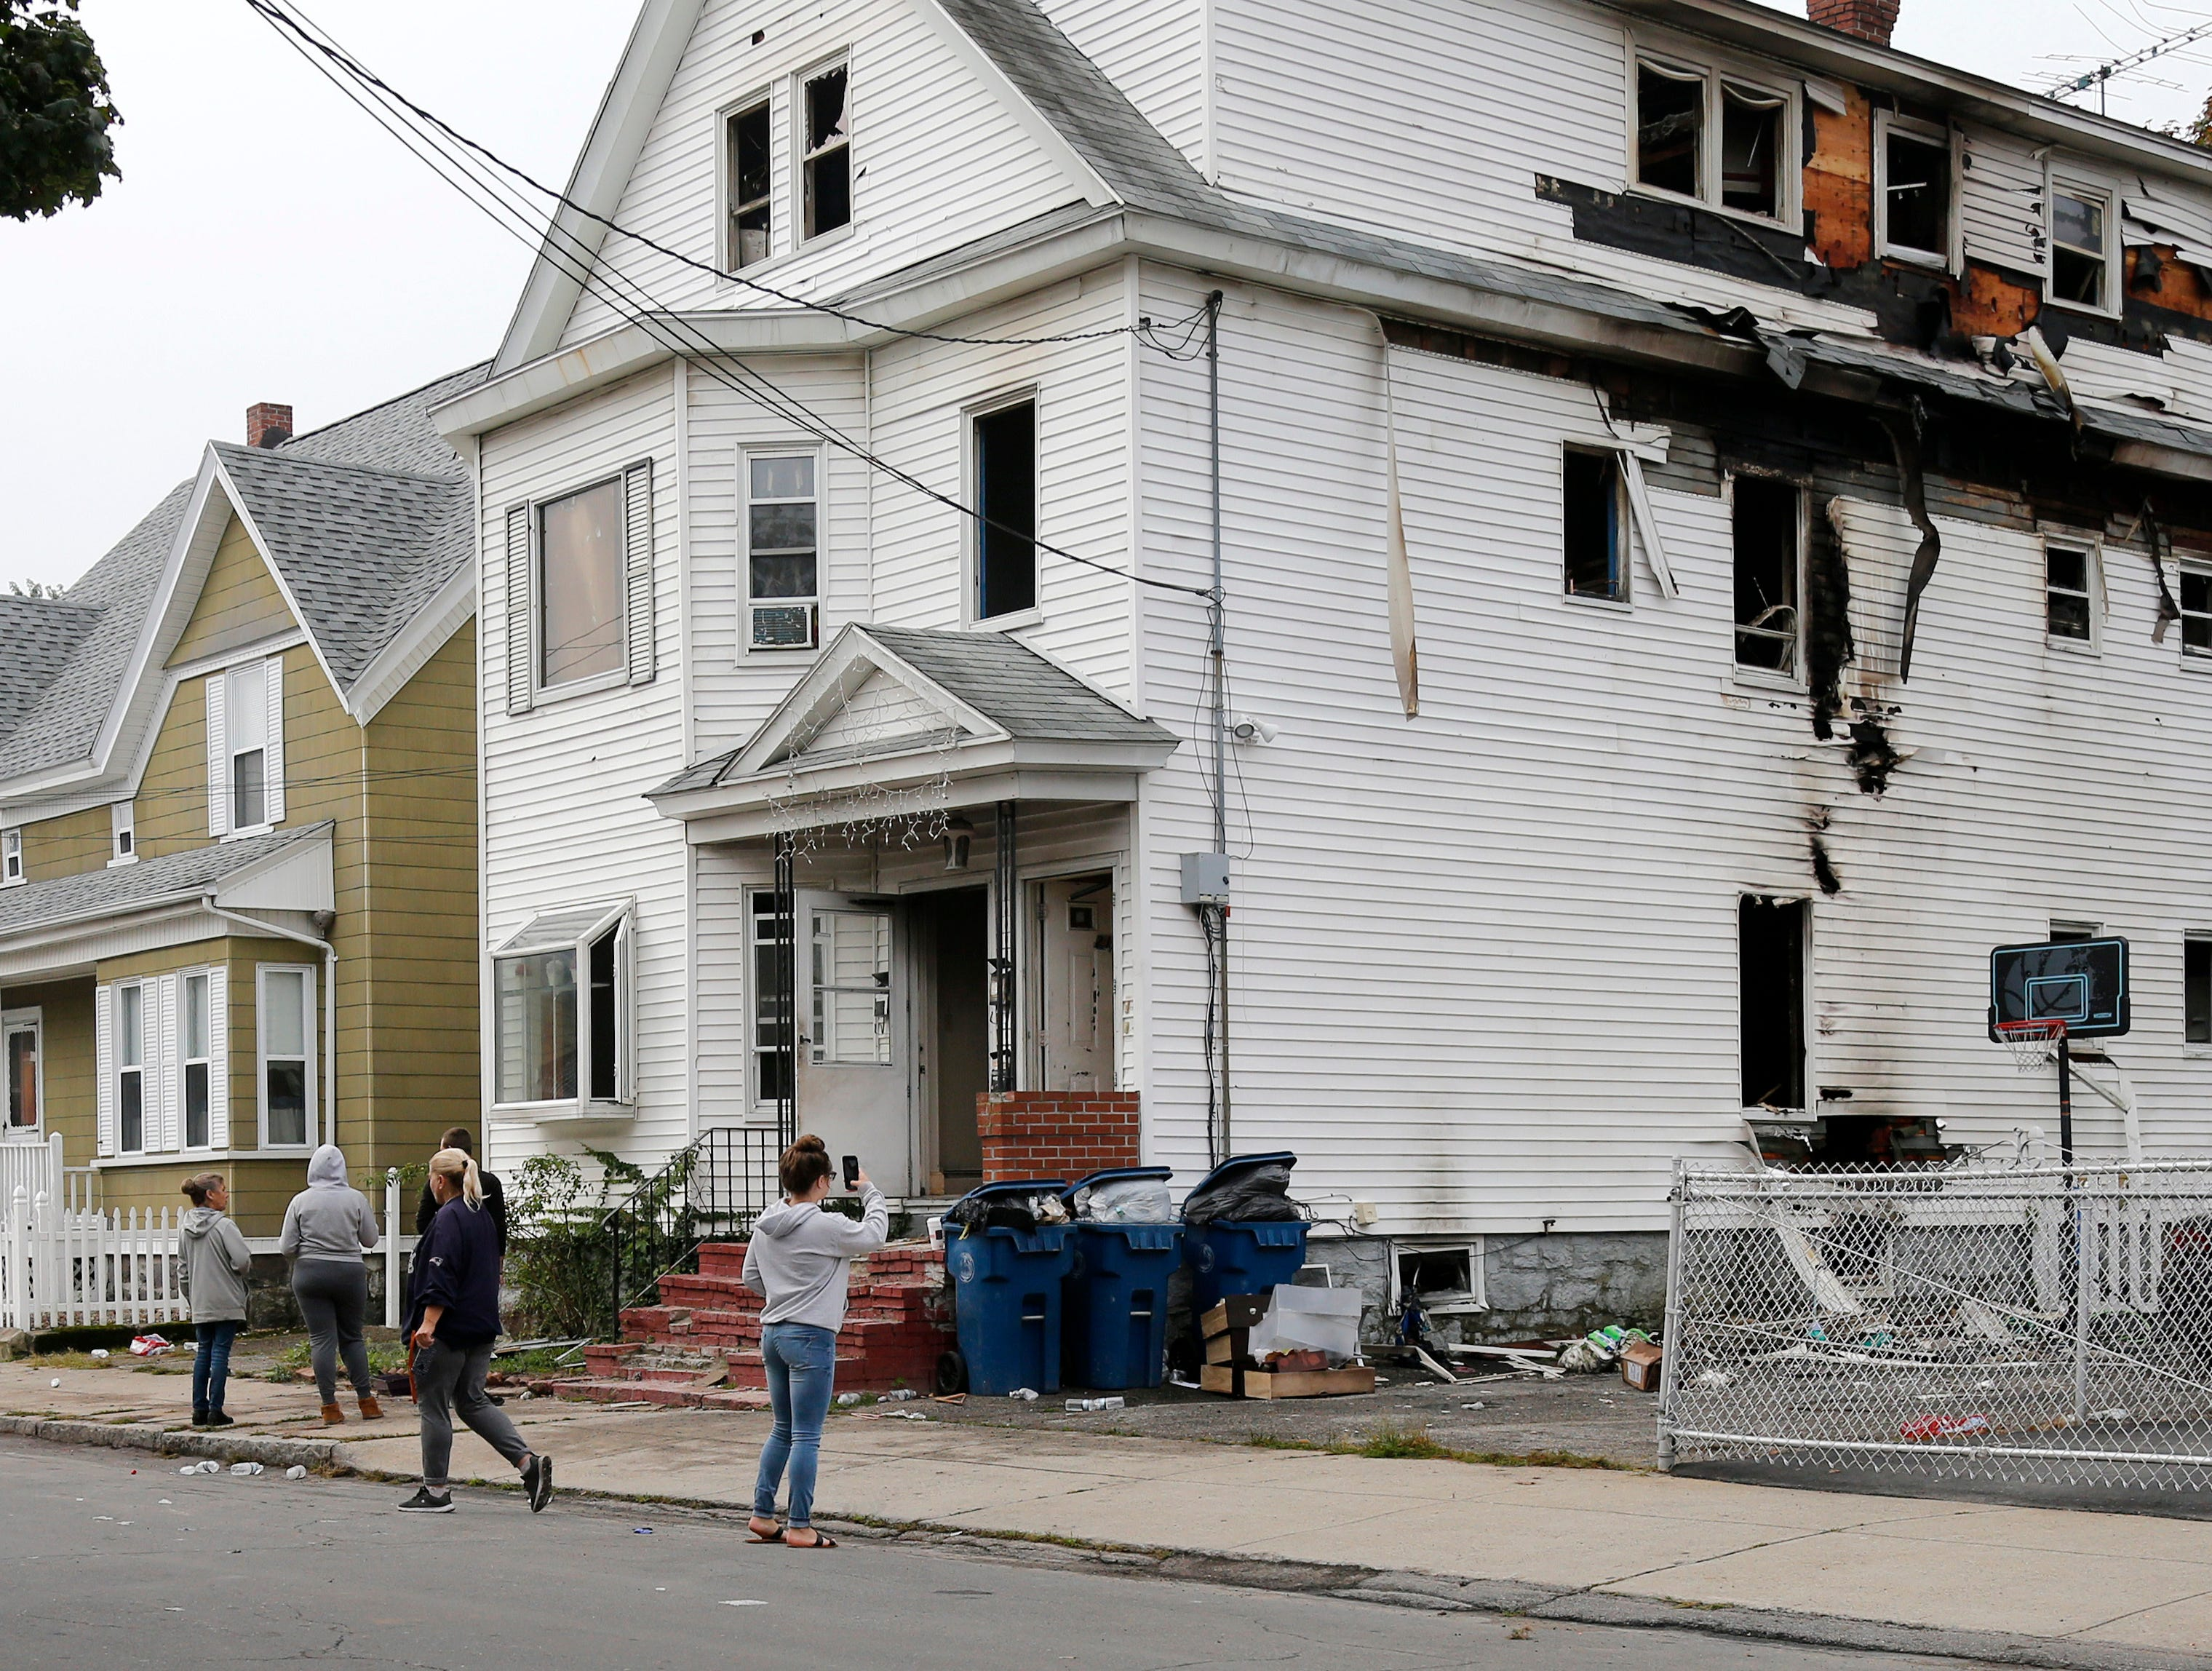 Lawrence residents stop to take photos of a house on Bowdoin Street in Lawrence Mass., Friday, Sept. 14, 2018. The home was one of multiple houses that went up in flames on Thursday afternoon after gas explosions and fires triggered by a problem with a gas line that feeds homes in several communities north of Boston